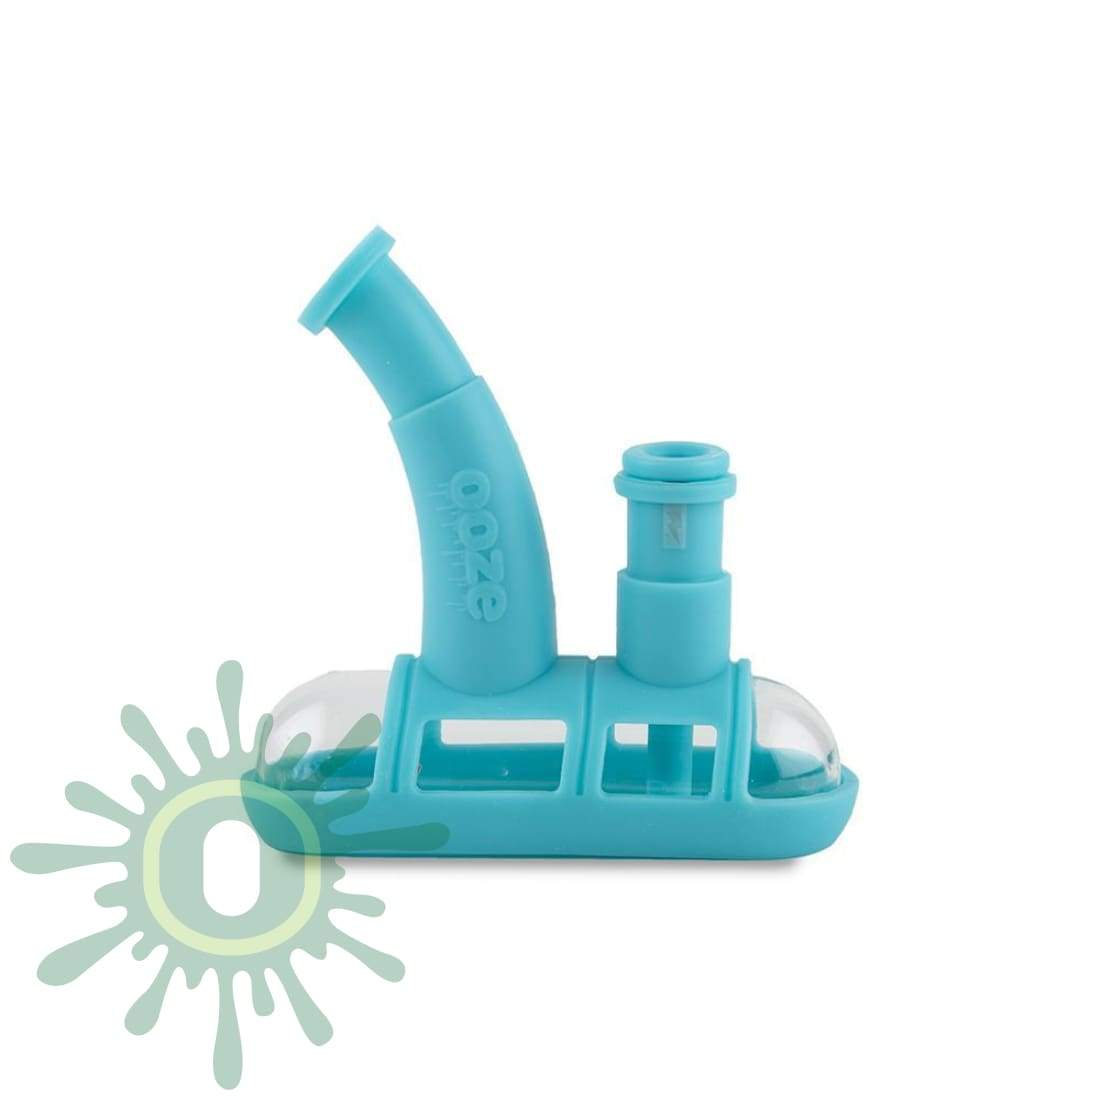 Ooze Steamboat Silicone Bubbler - Teal And Glass Water Pipe